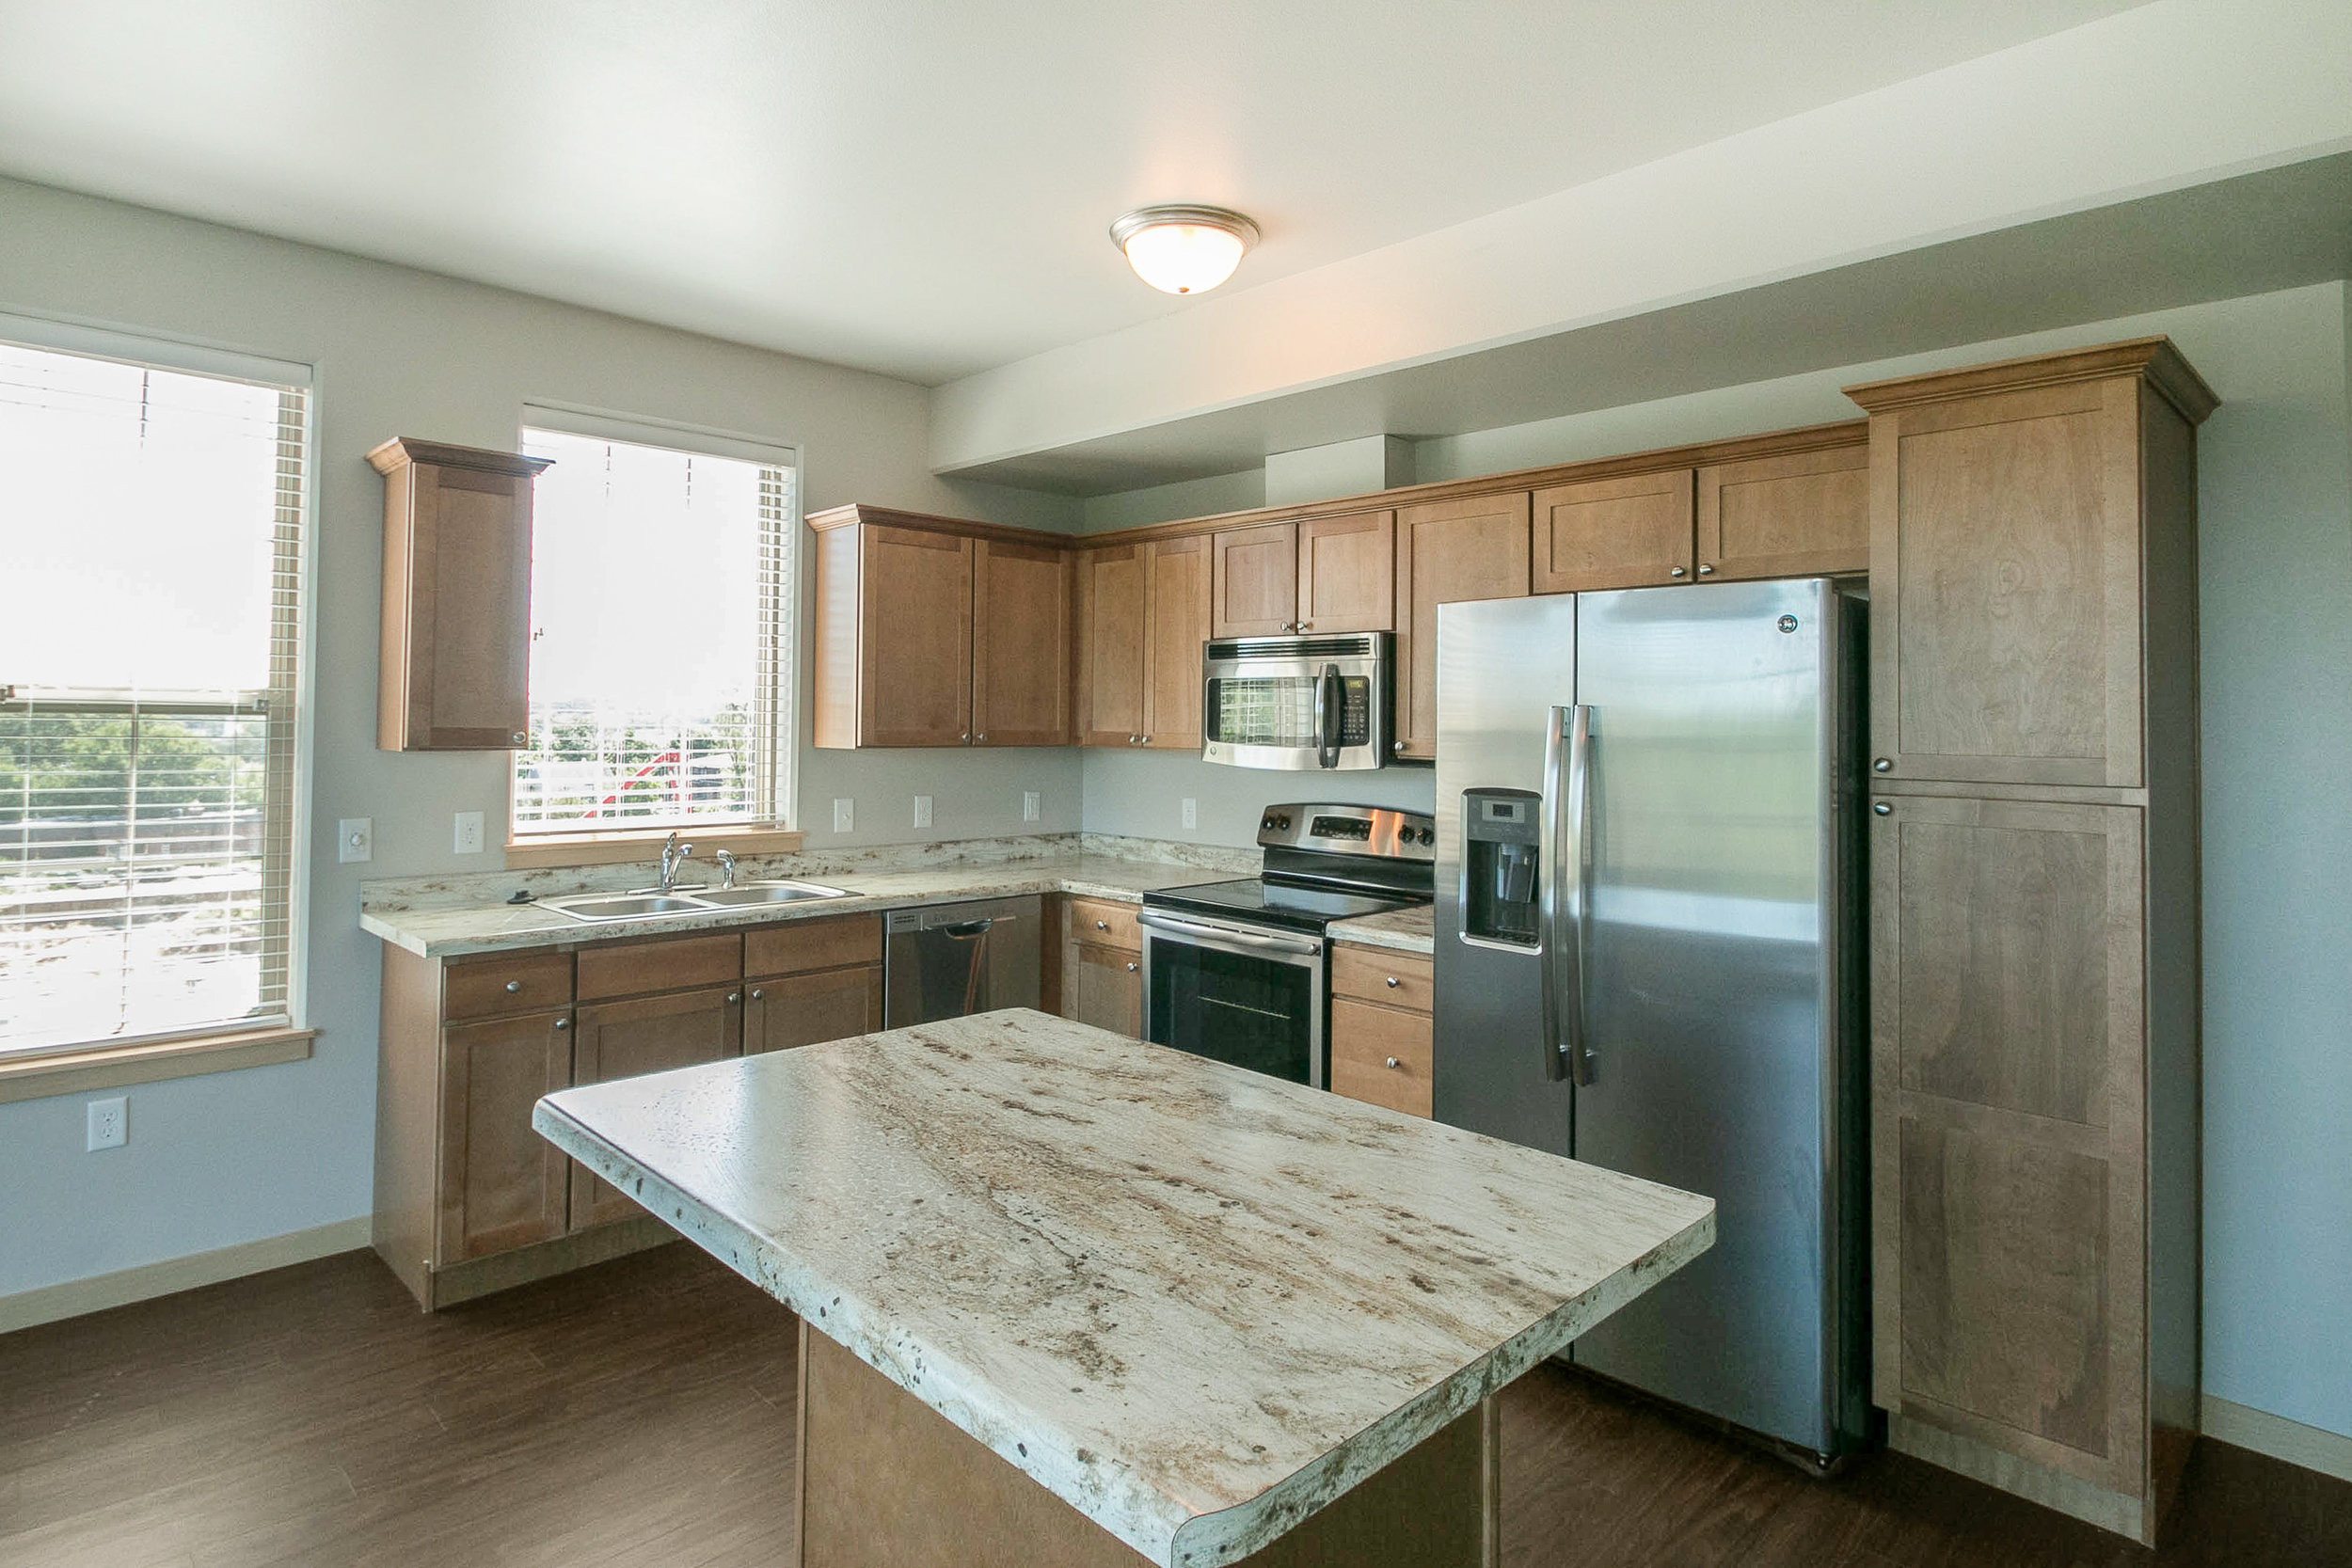 808_on_5th_project_MLS_HID1047709_ROOMkitchen517.jpg